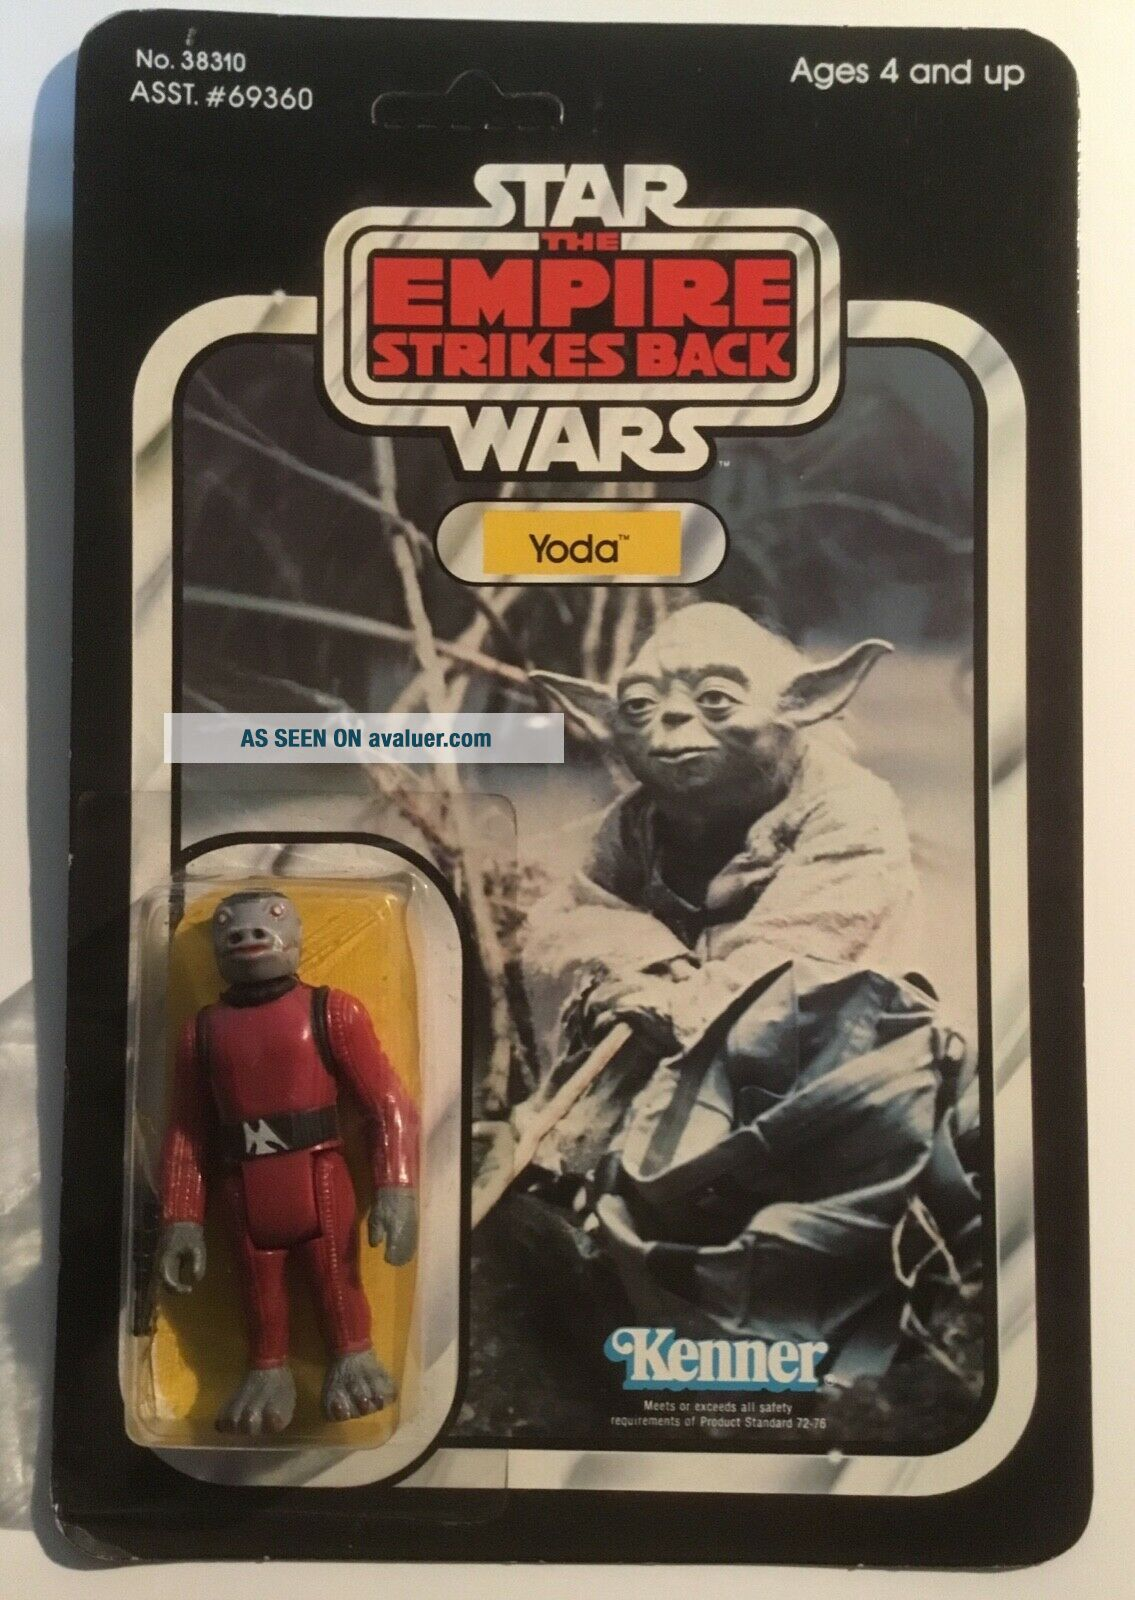 Vintage STAR WARS error Kenner TOLTOYS Snaggletooth on Yoda ESB 41 Bck TEST CARD